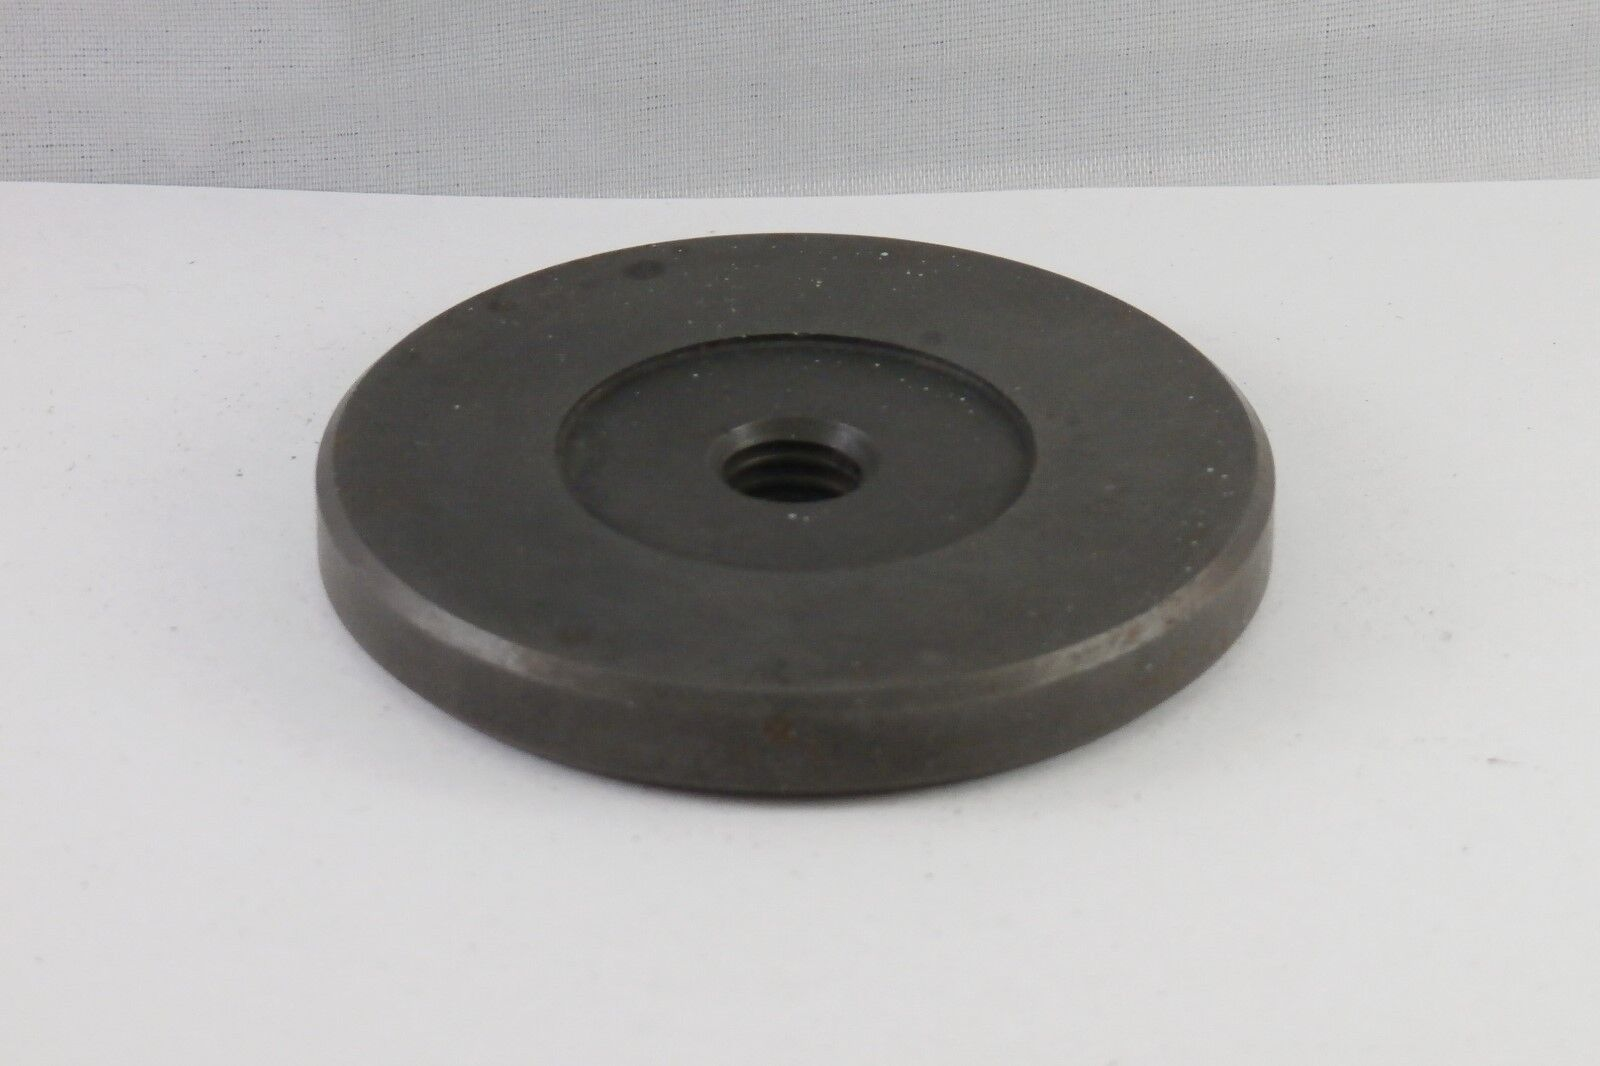 J23597 20 Pinion Setting Gauge Adapter Tool Gm Kent Moore Free Us Ship Used For Sale In